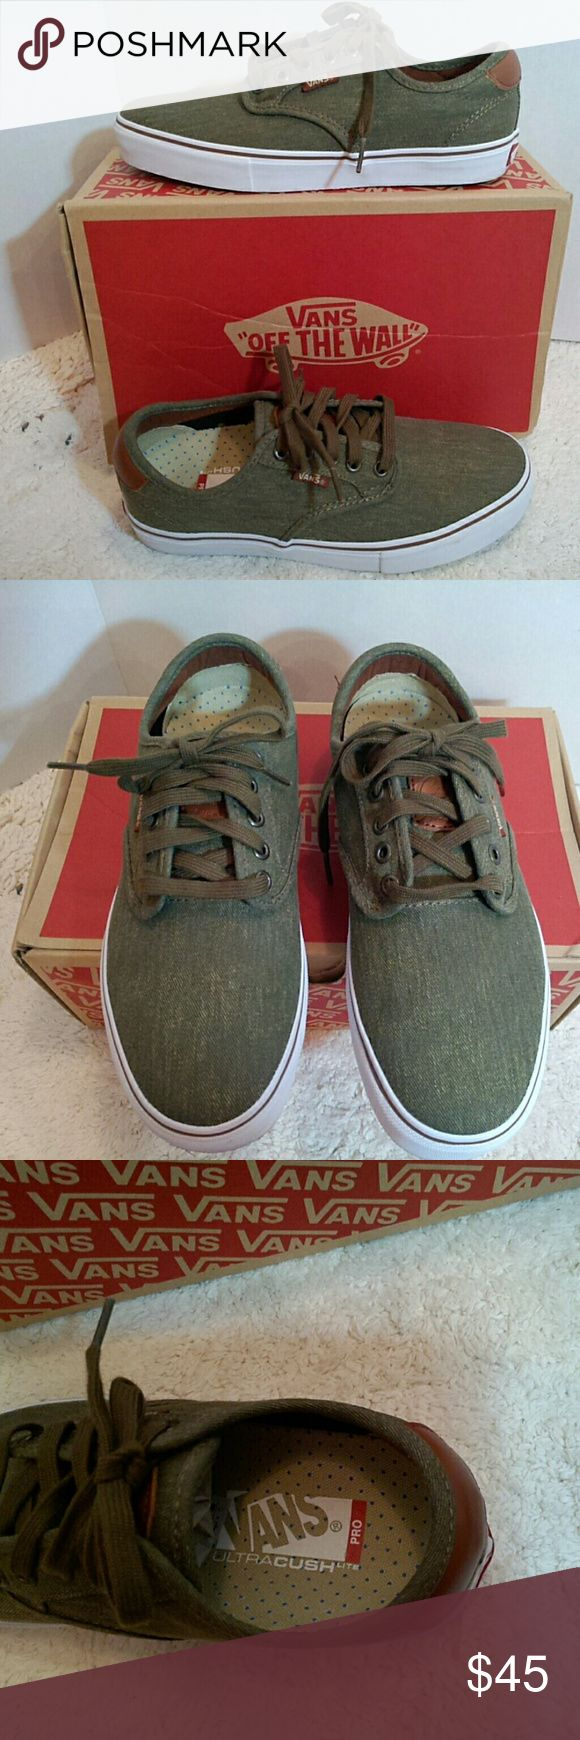 Vans Chima Ferguson Pro skateboard shoes olive green twill; Chima Ferguson Pro skateboard shoes; the skateboard shoe has more support than regular Vans; comes with extra shoe laces in a tan color; very slight scuffs from trying on in the house but never worn outside; excellent condition; mens size 7; womens size 8.5-9 ; new in box    (box) Vans Shoes Athletic Shoes